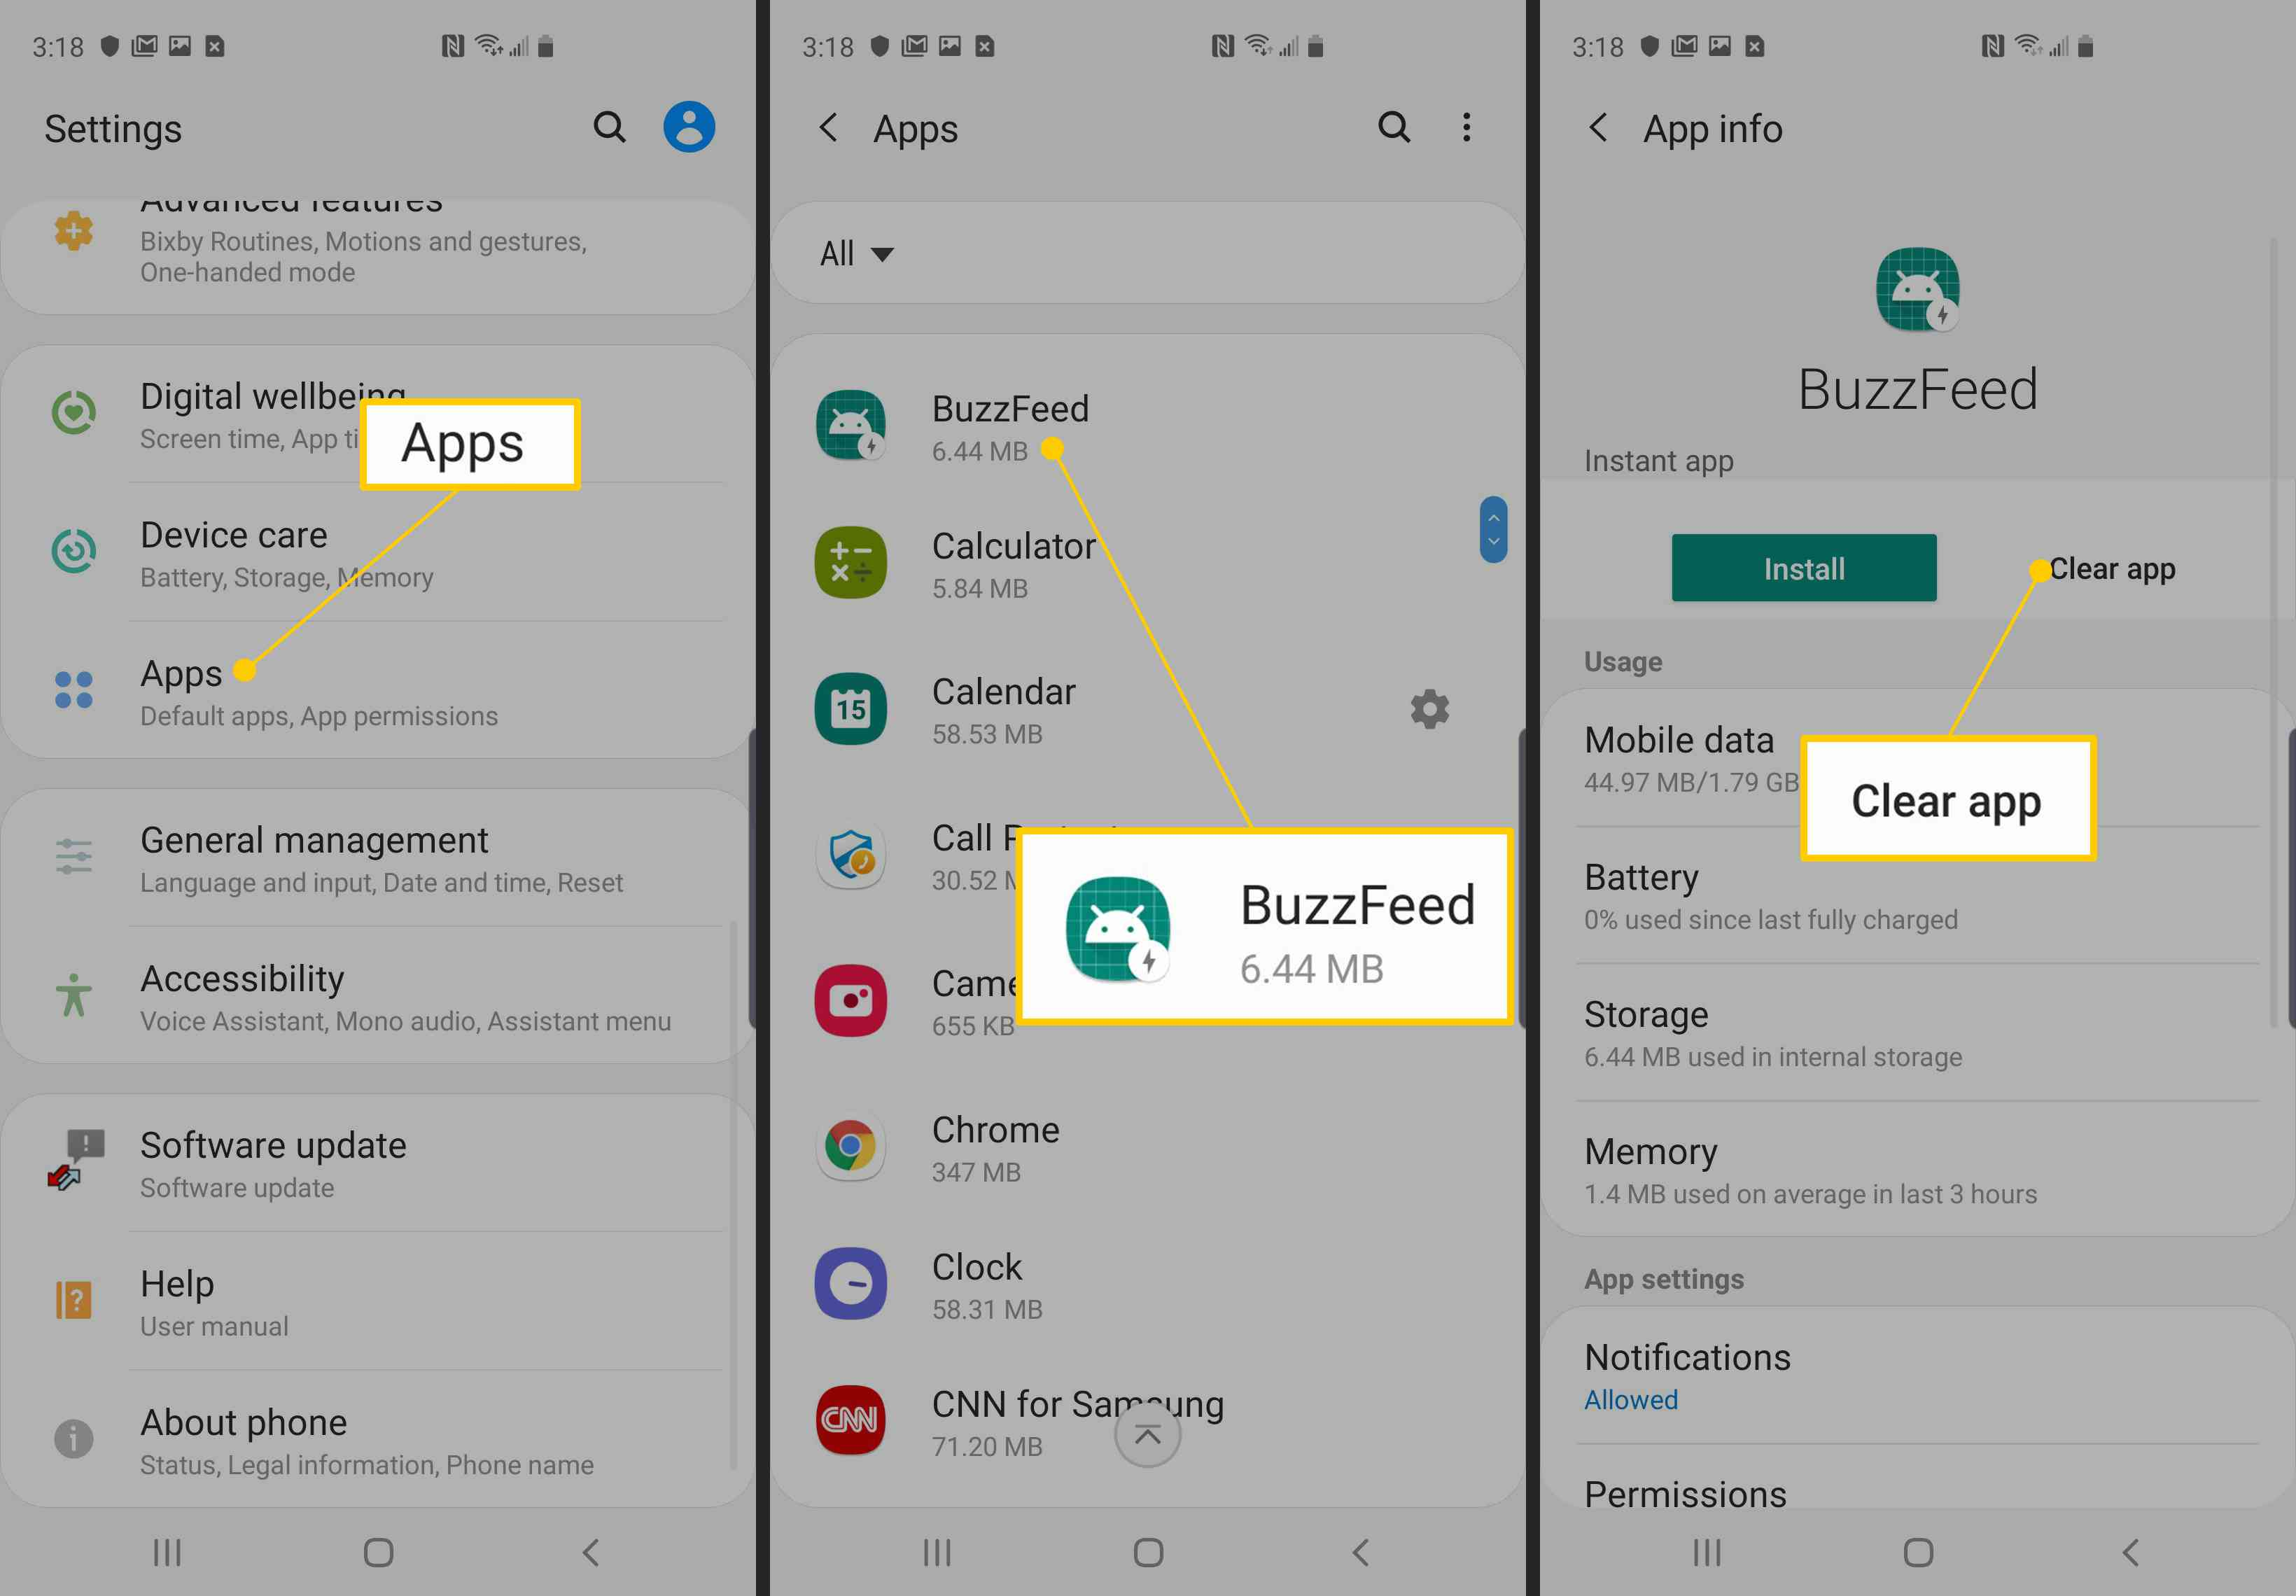 Apps, BuzzFeed, Clear app in Android settings